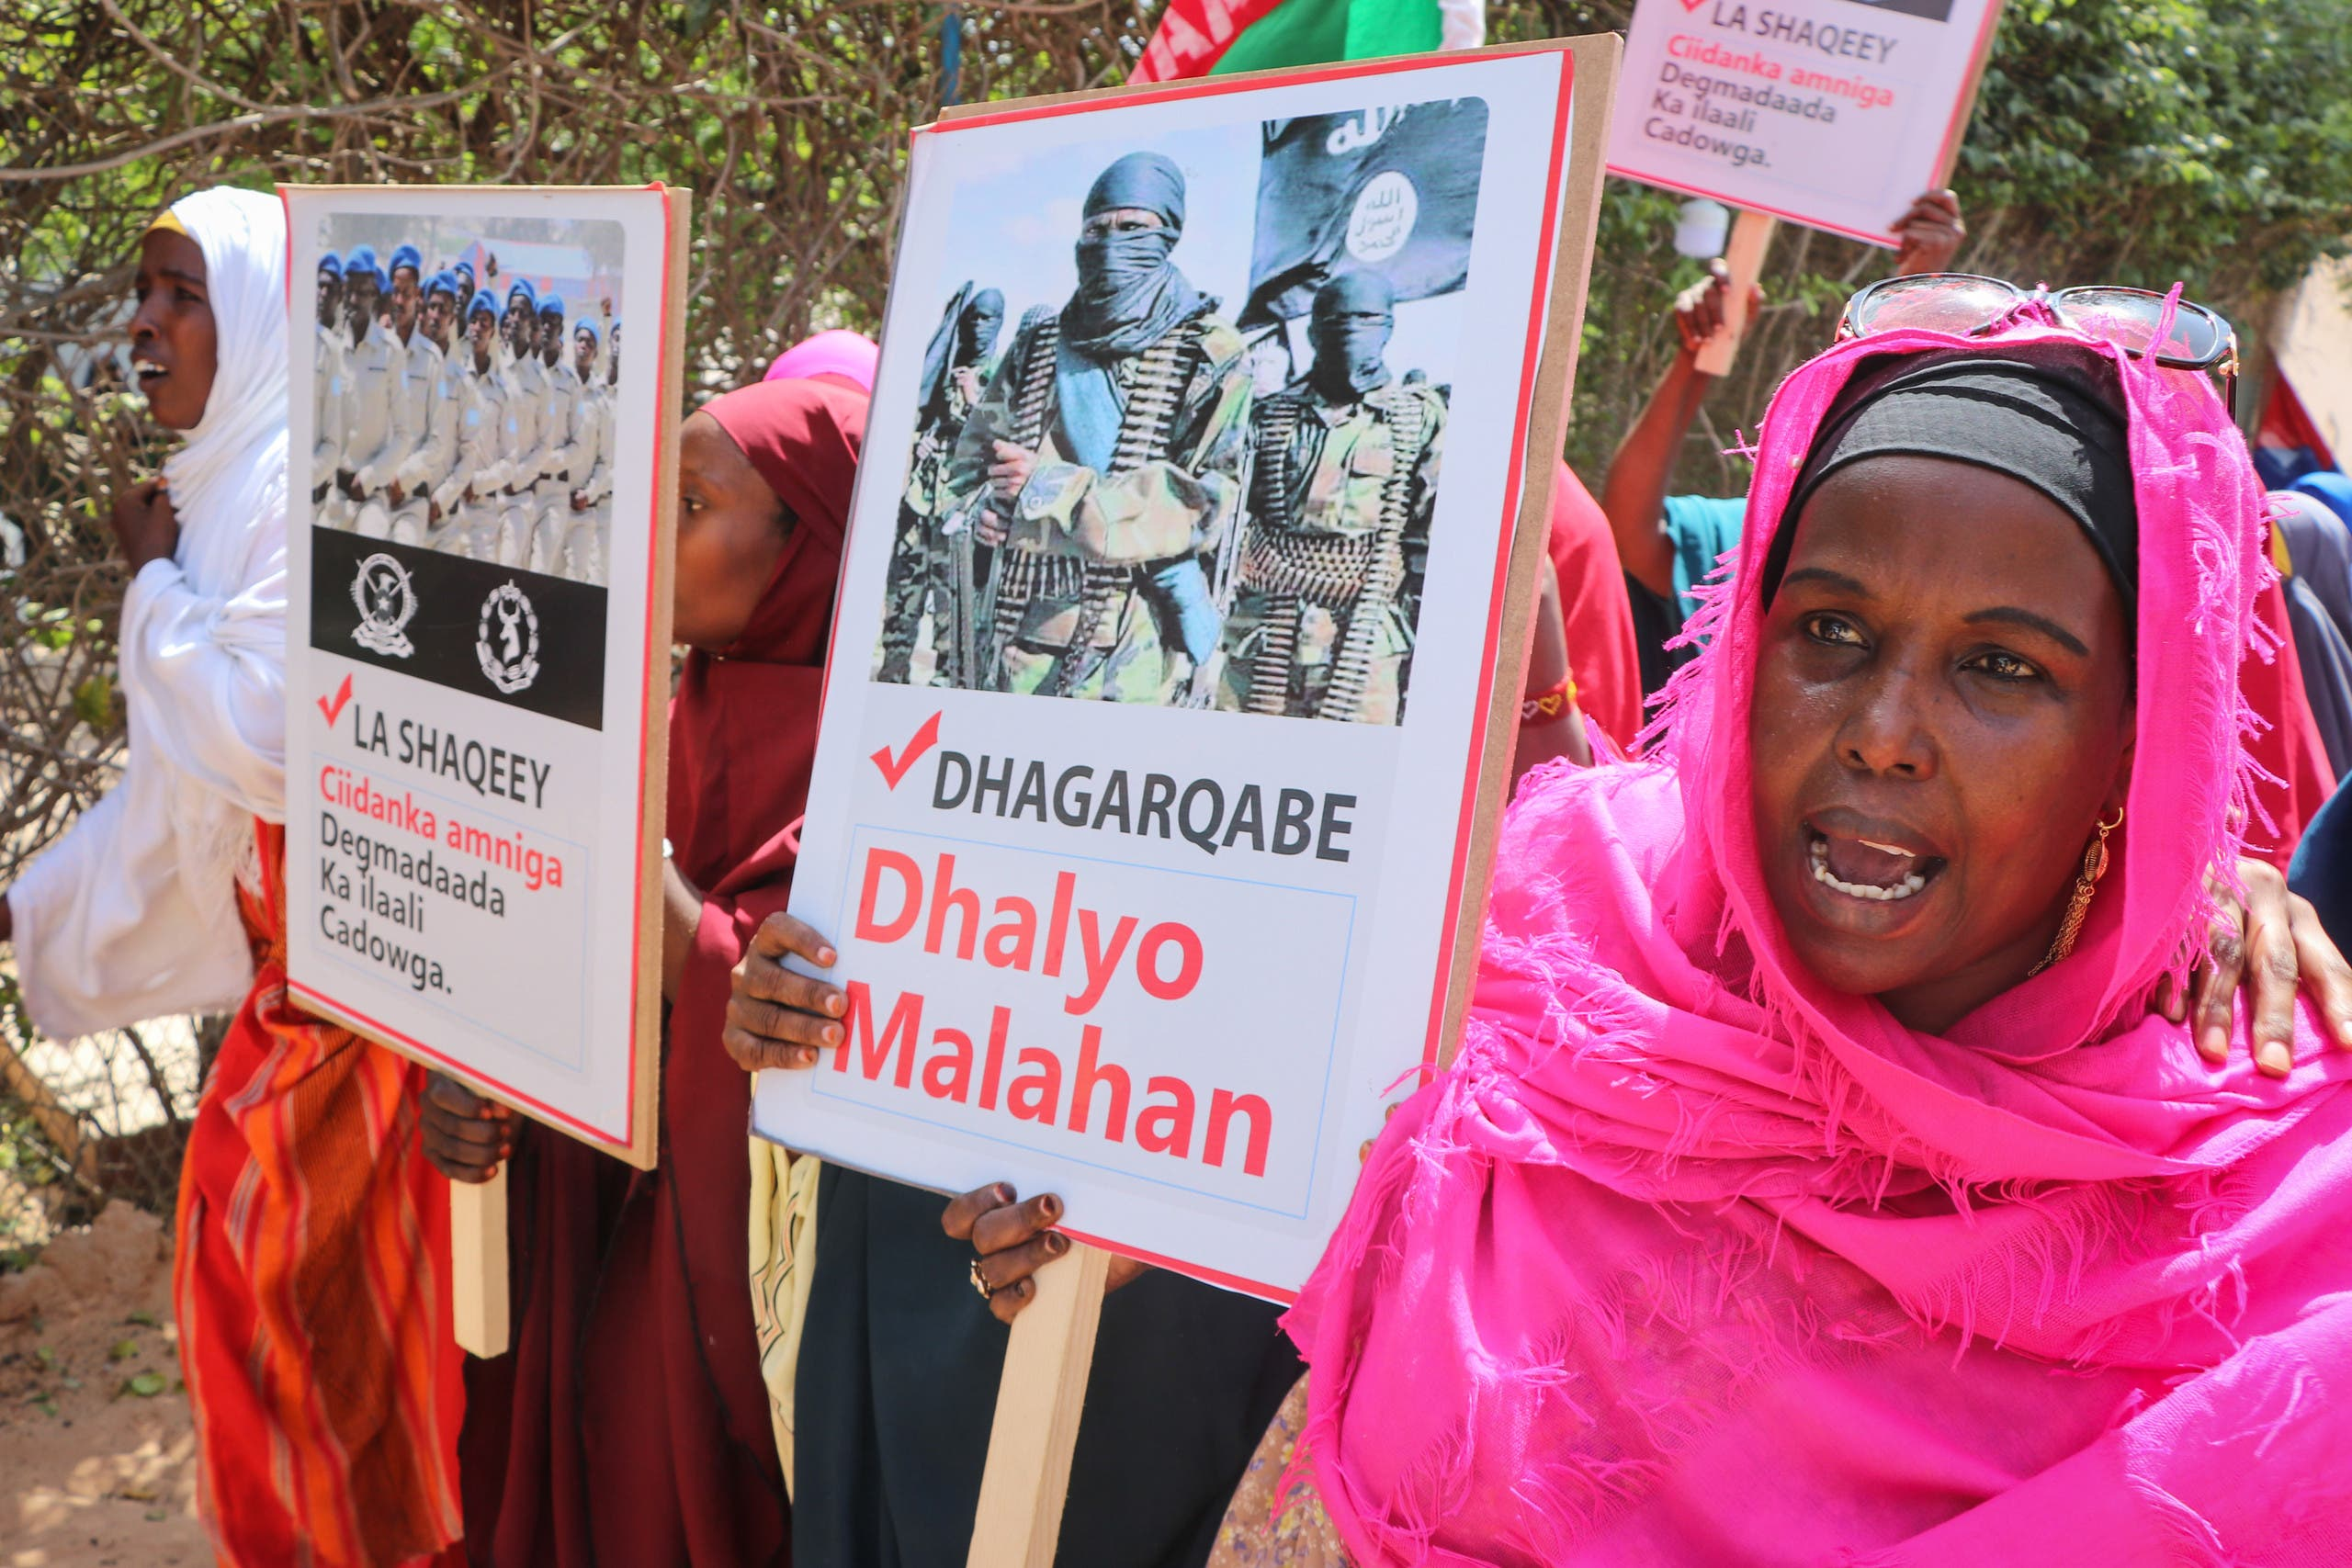 Somali women chant slogans and hold placards as they protest against Somali Islamist group al-Shabaab in Mogadishu on January 2, 2020. (AFP)